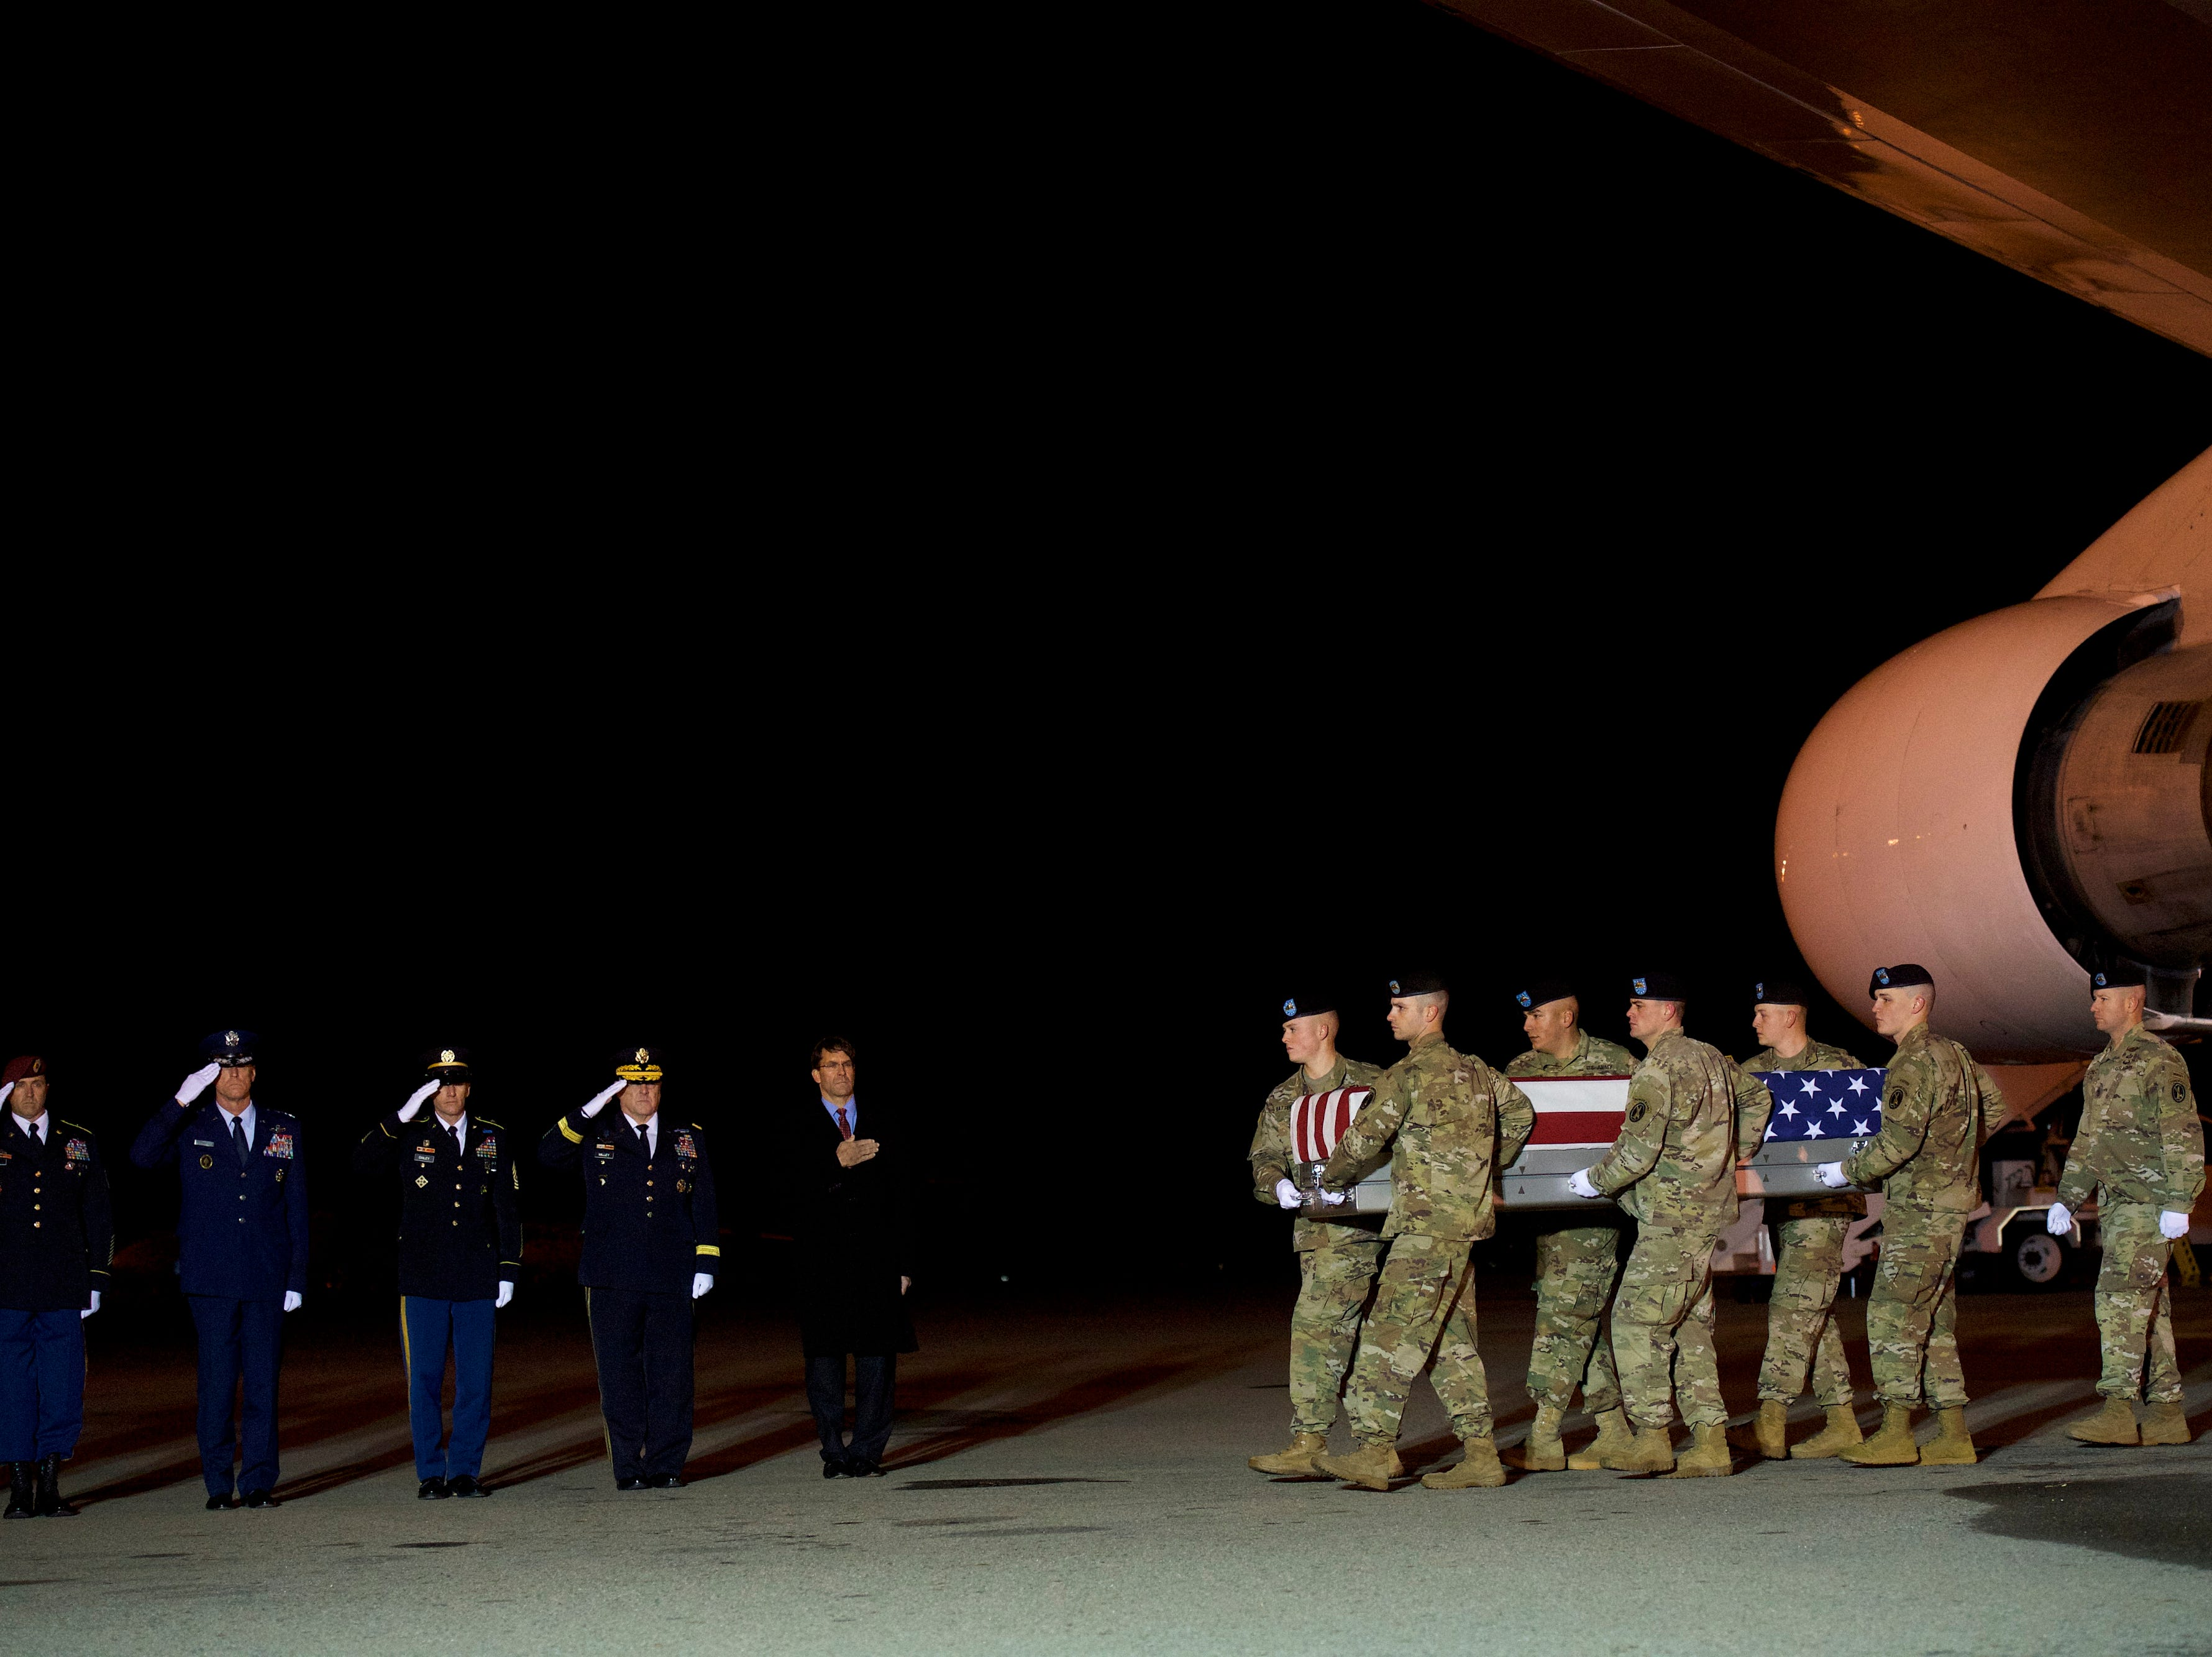 Armed forces members carry a case covered with an American flag during a dignified transfer for fallen service member Sgt. Leandro A.S. Jasso on Nov. 27, 2018 in Dover, Delaware. Jasso of Leavenworth, Washington was killed in Afghanistan while engaging enemy forces.